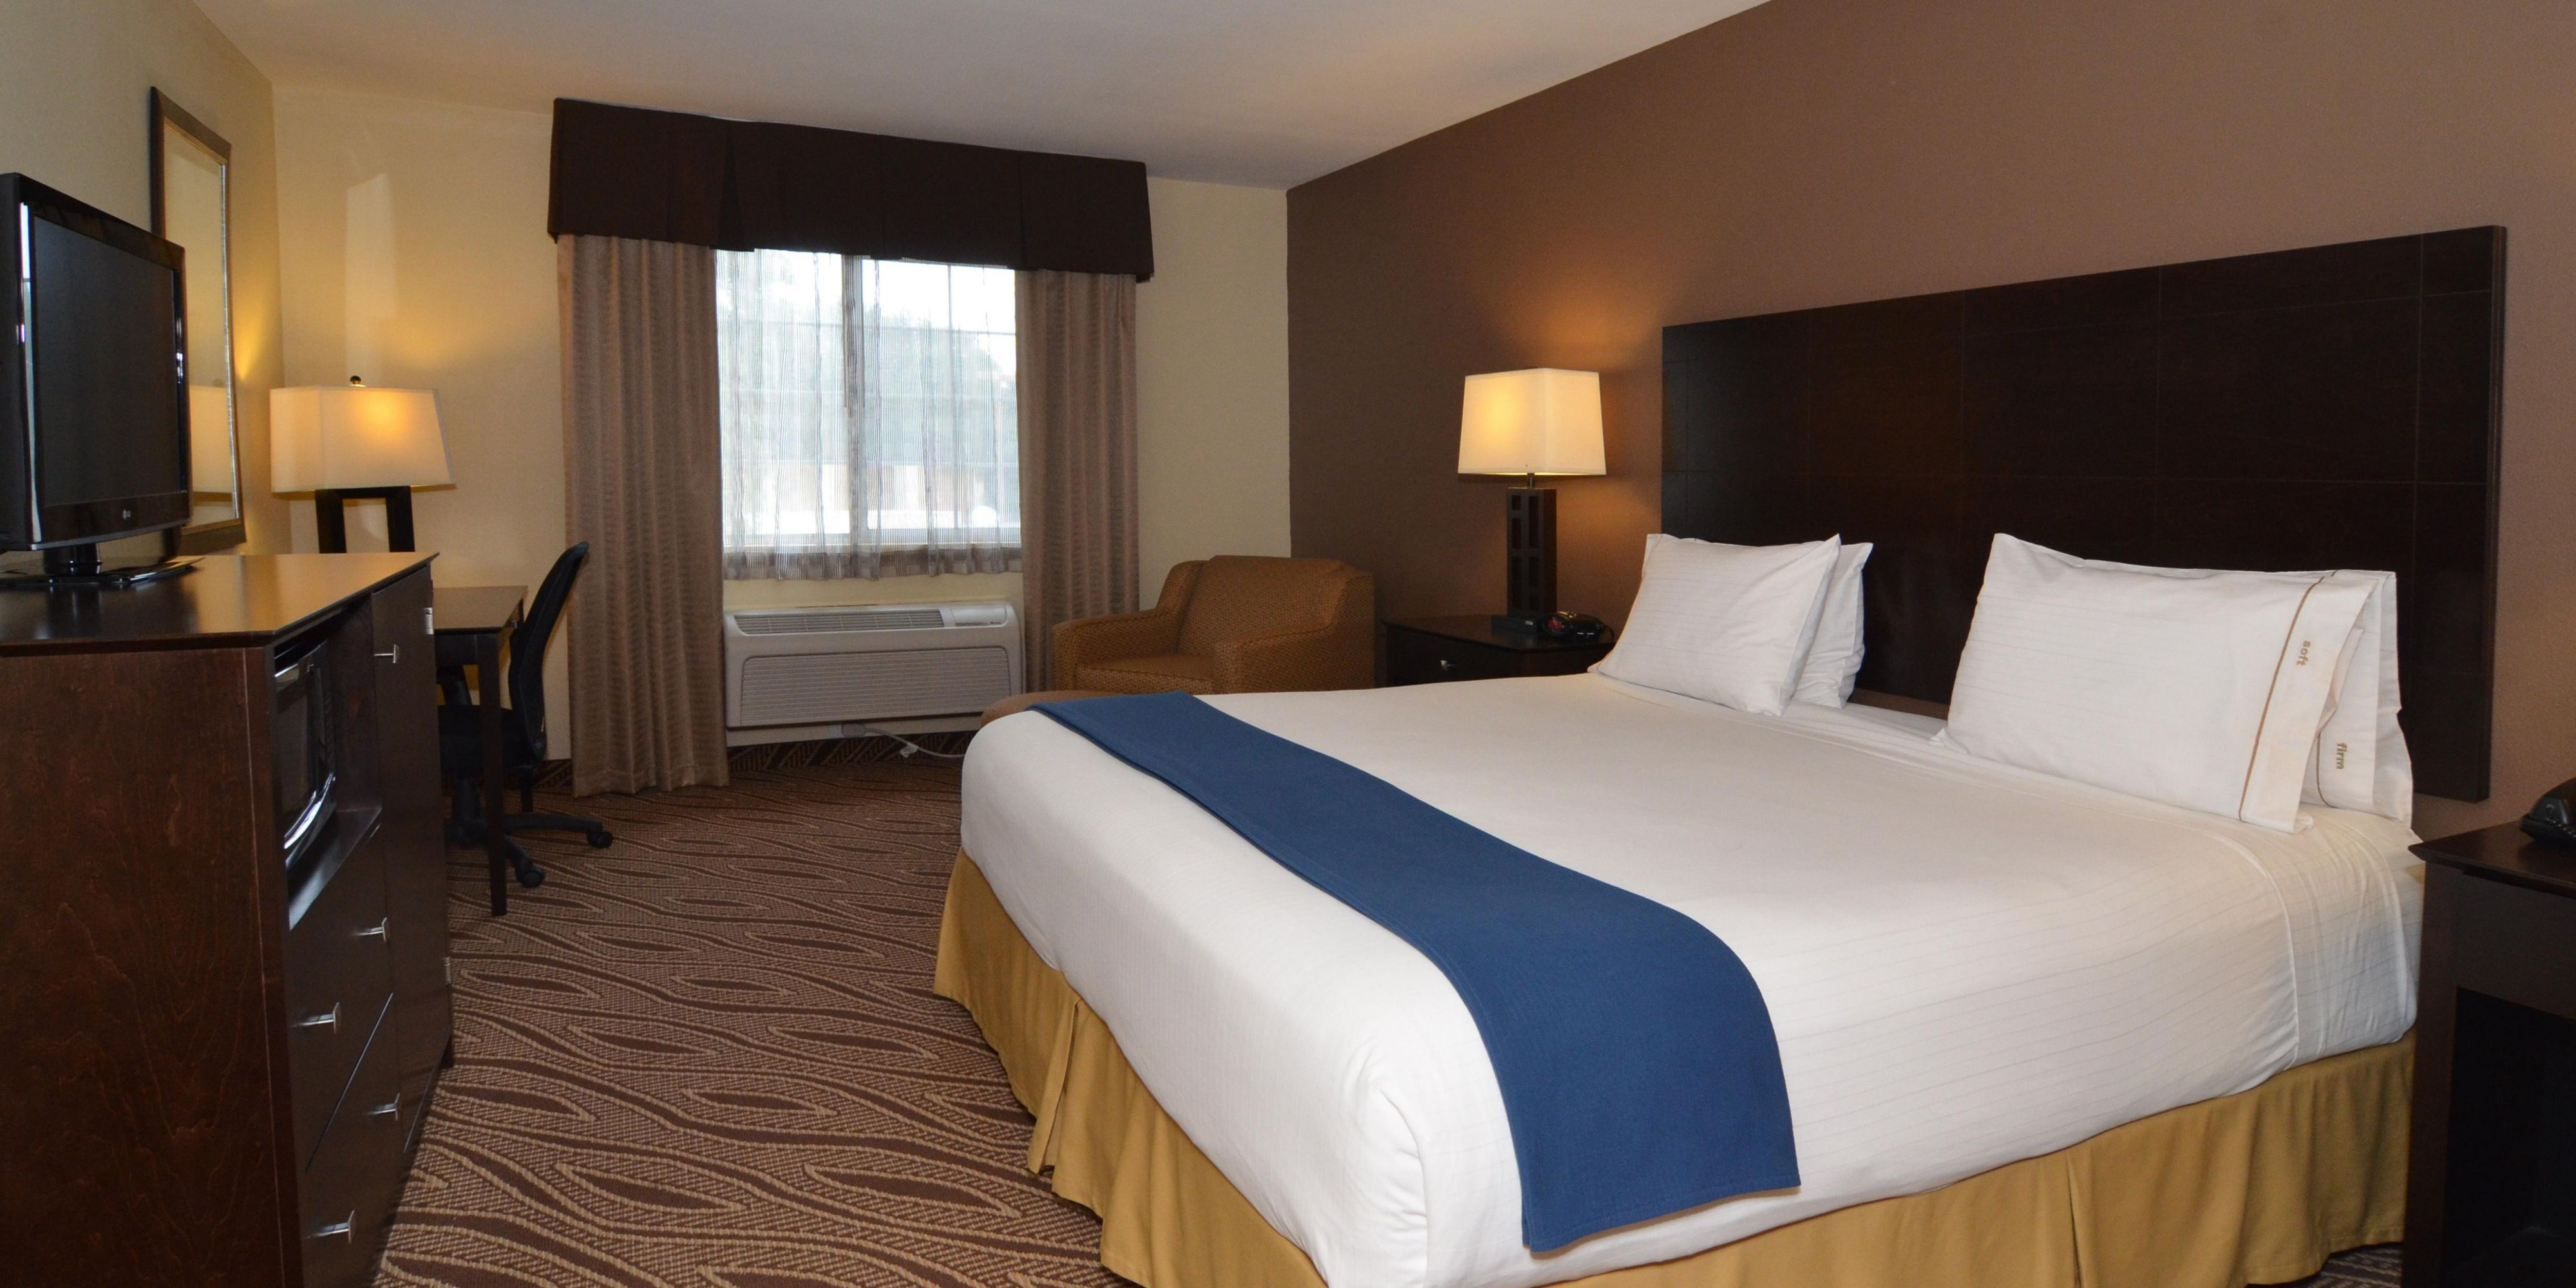 2 Bedroom Hotels Near Seaworld San Antonio